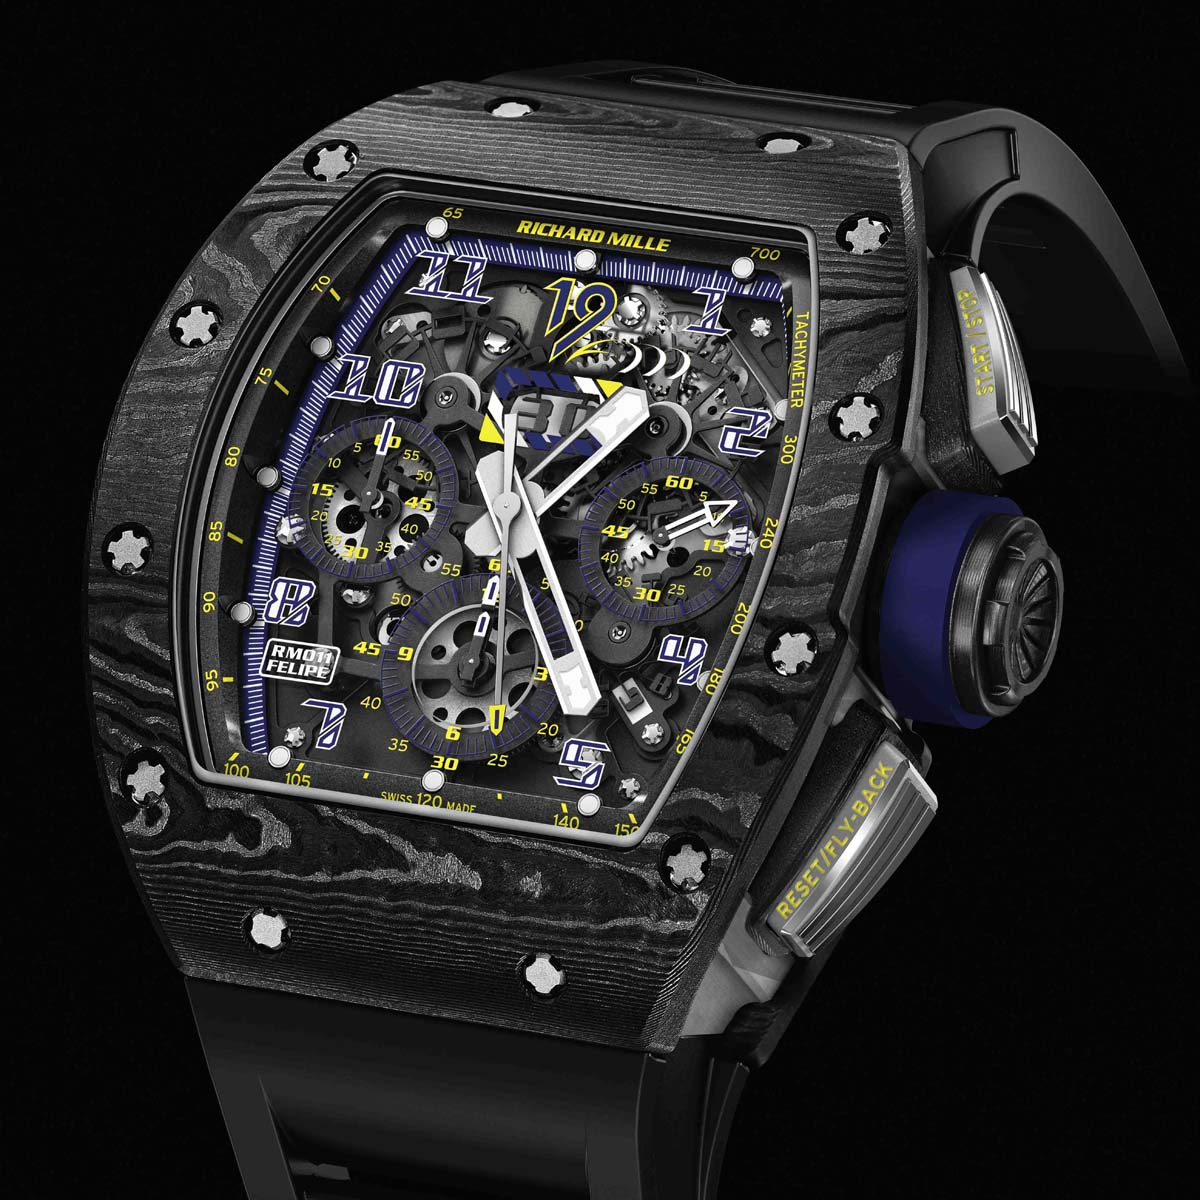 Richard Mille RM 011 Felipe Massa 10th Anniversary